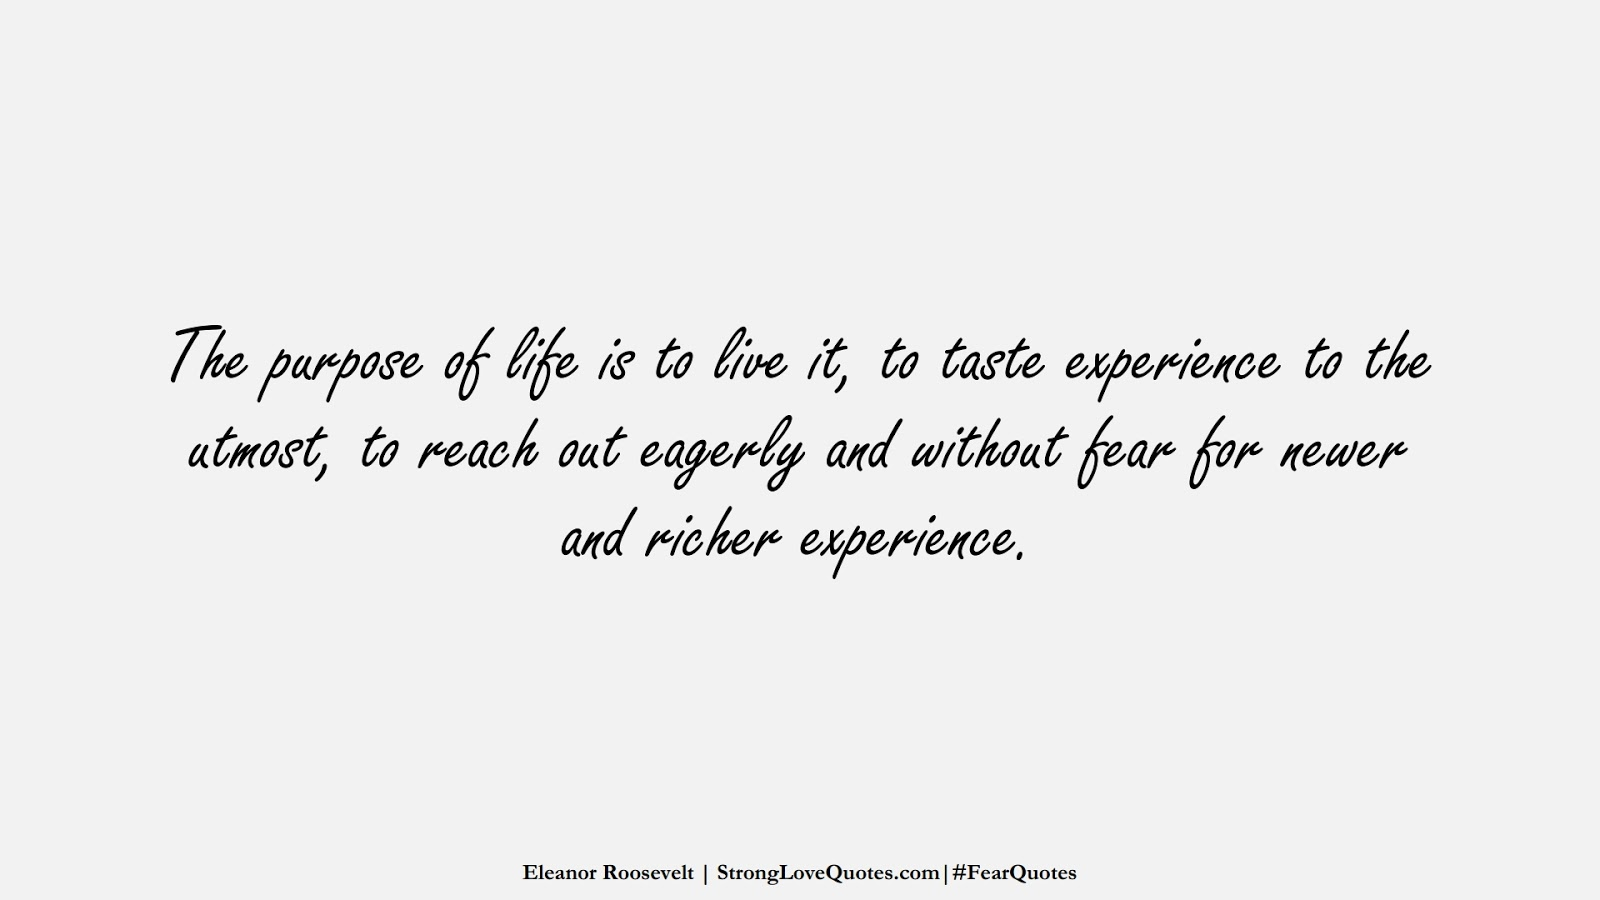 The purpose of life is to live it, to taste experience to the utmost, to reach out eagerly and without fear for newer and richer experience. (Eleanor Roosevelt);  #FearQuotes